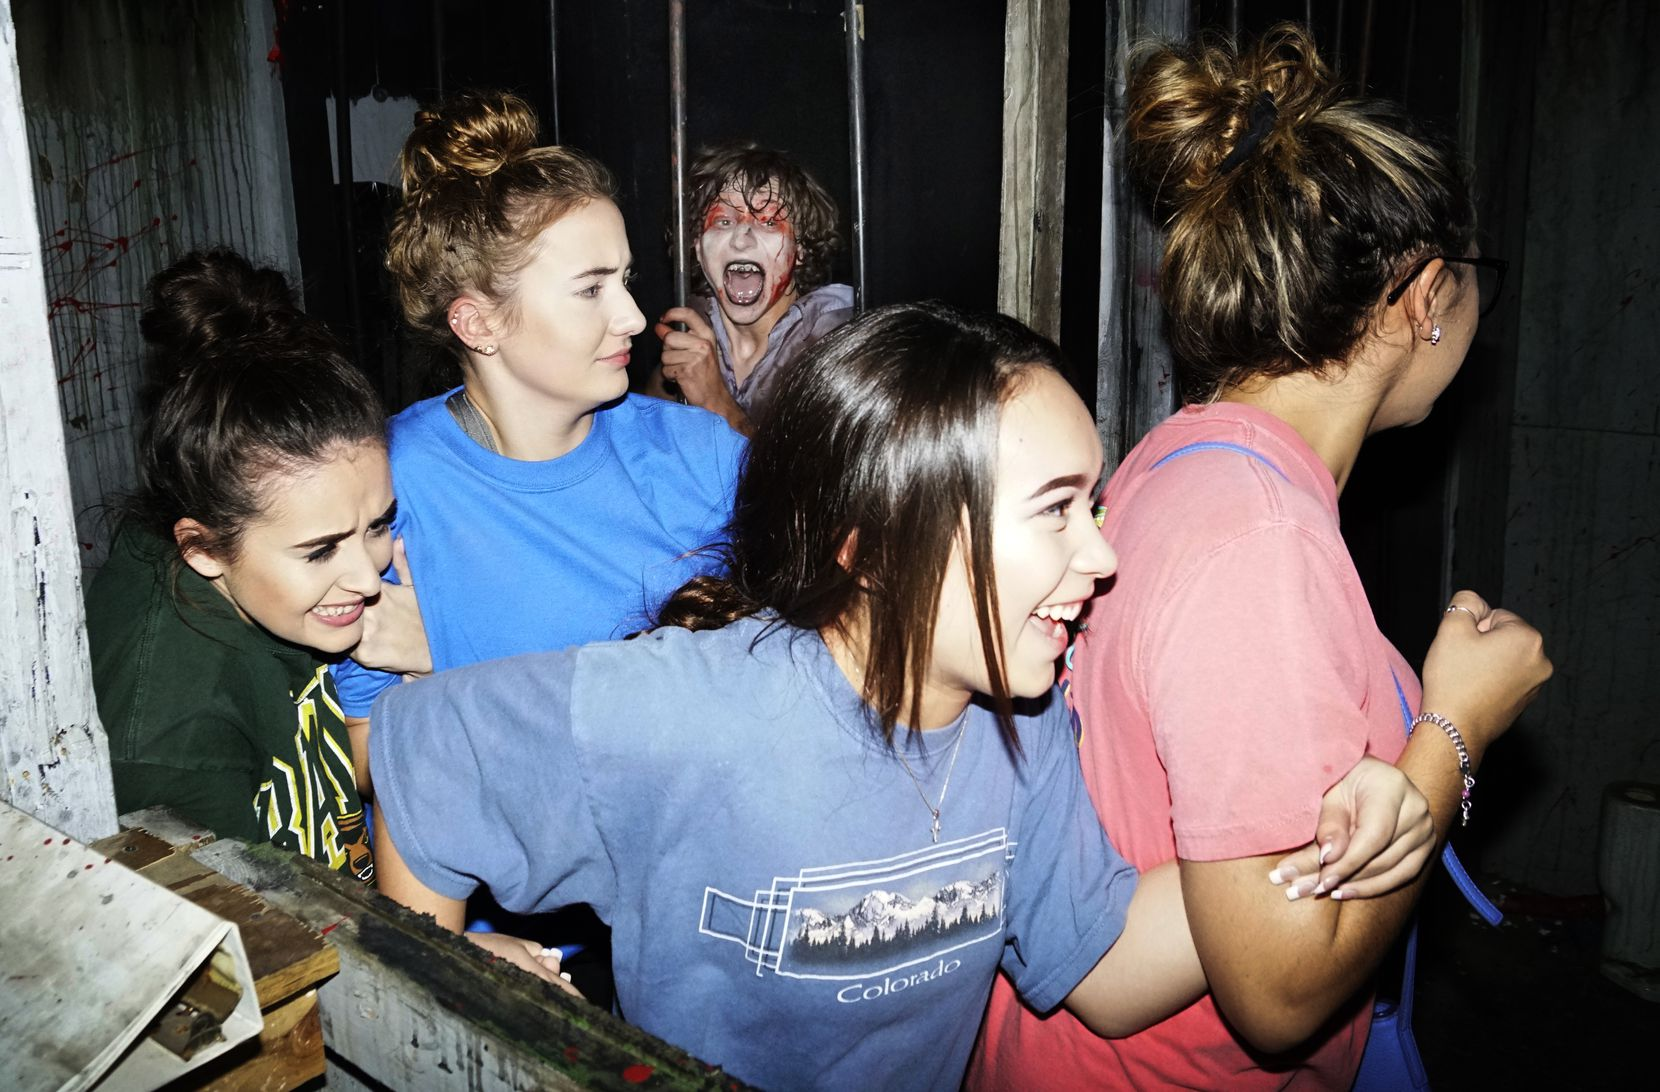 A group of attendees sticks together at Hangman's House of Horrors in Fort Worth in 2017.